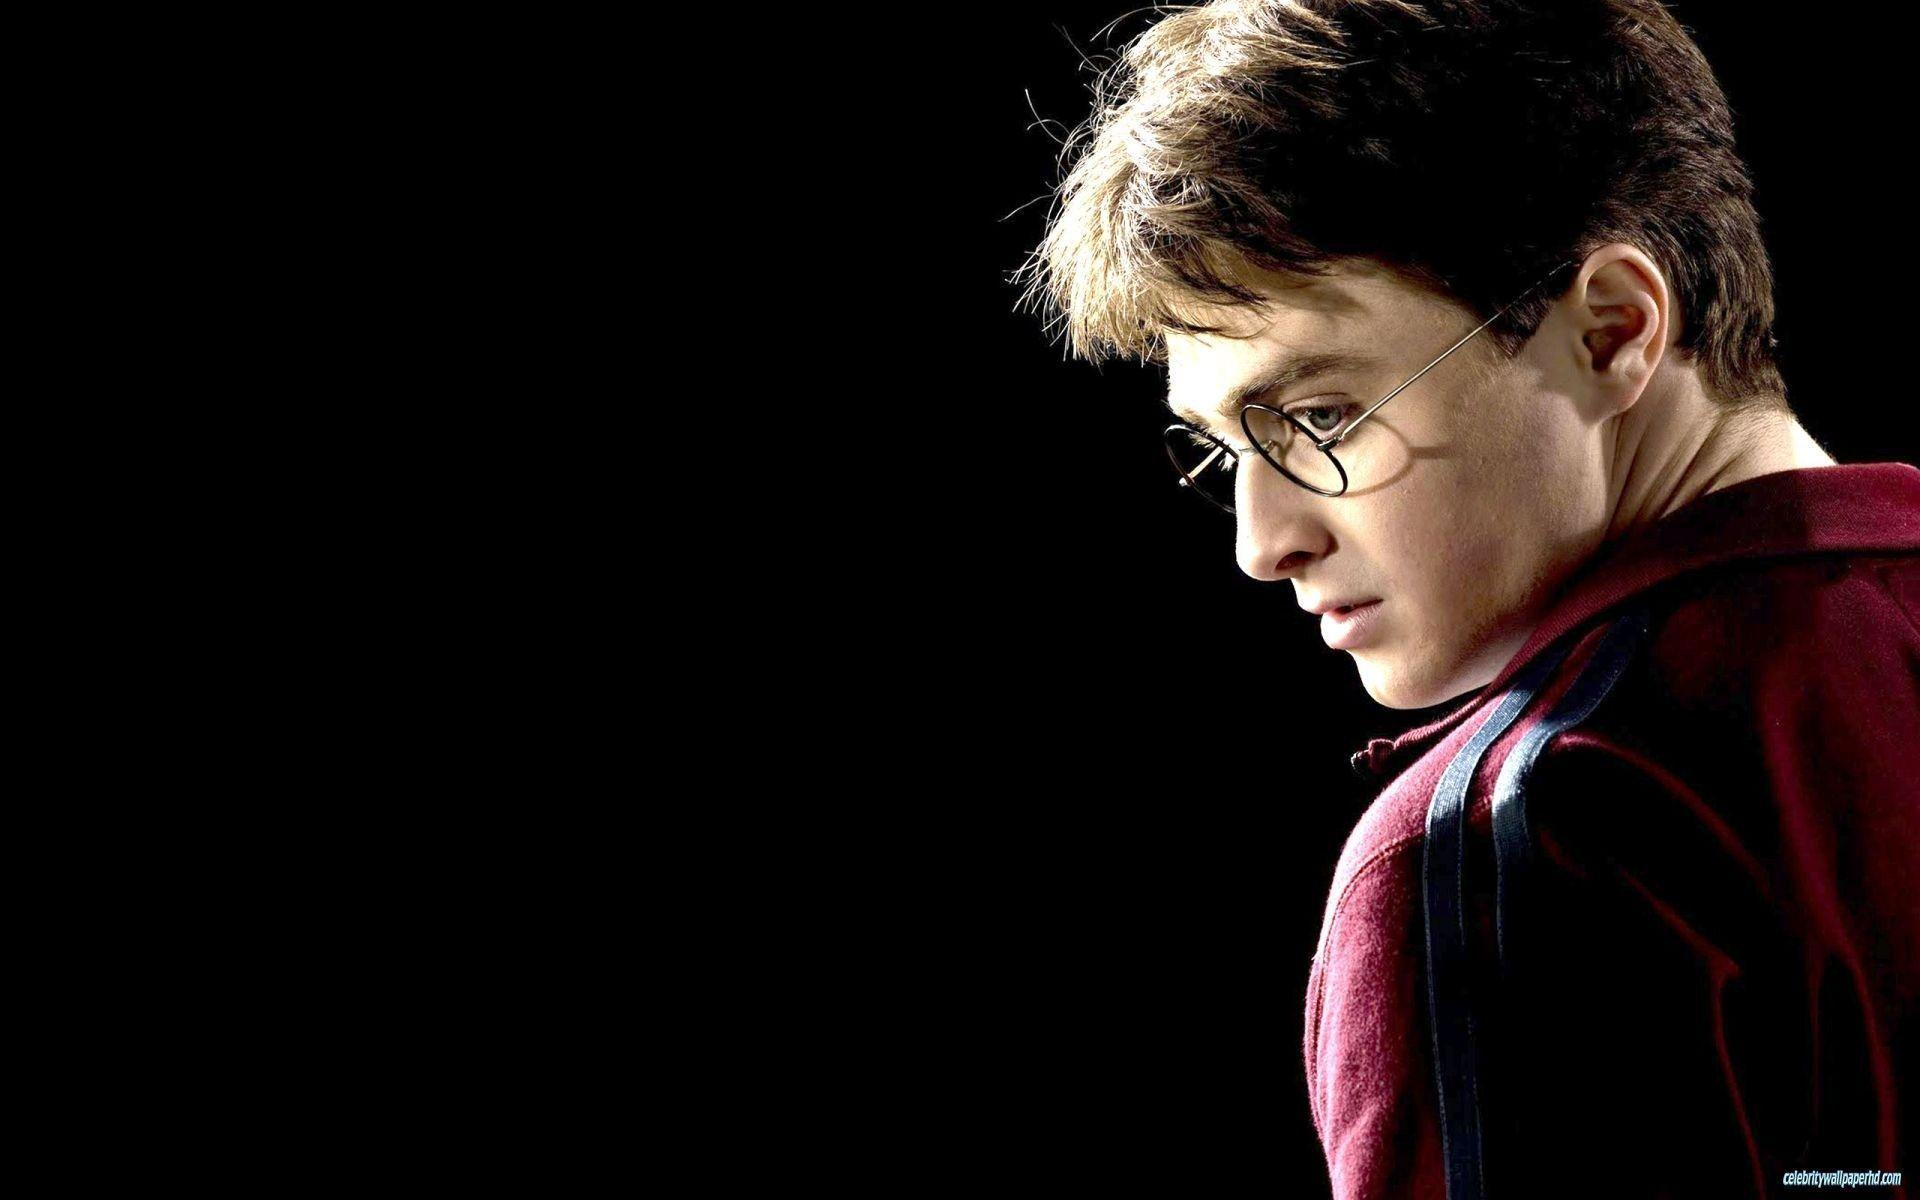 radcliffe hd wallpapers num2 - photo #23